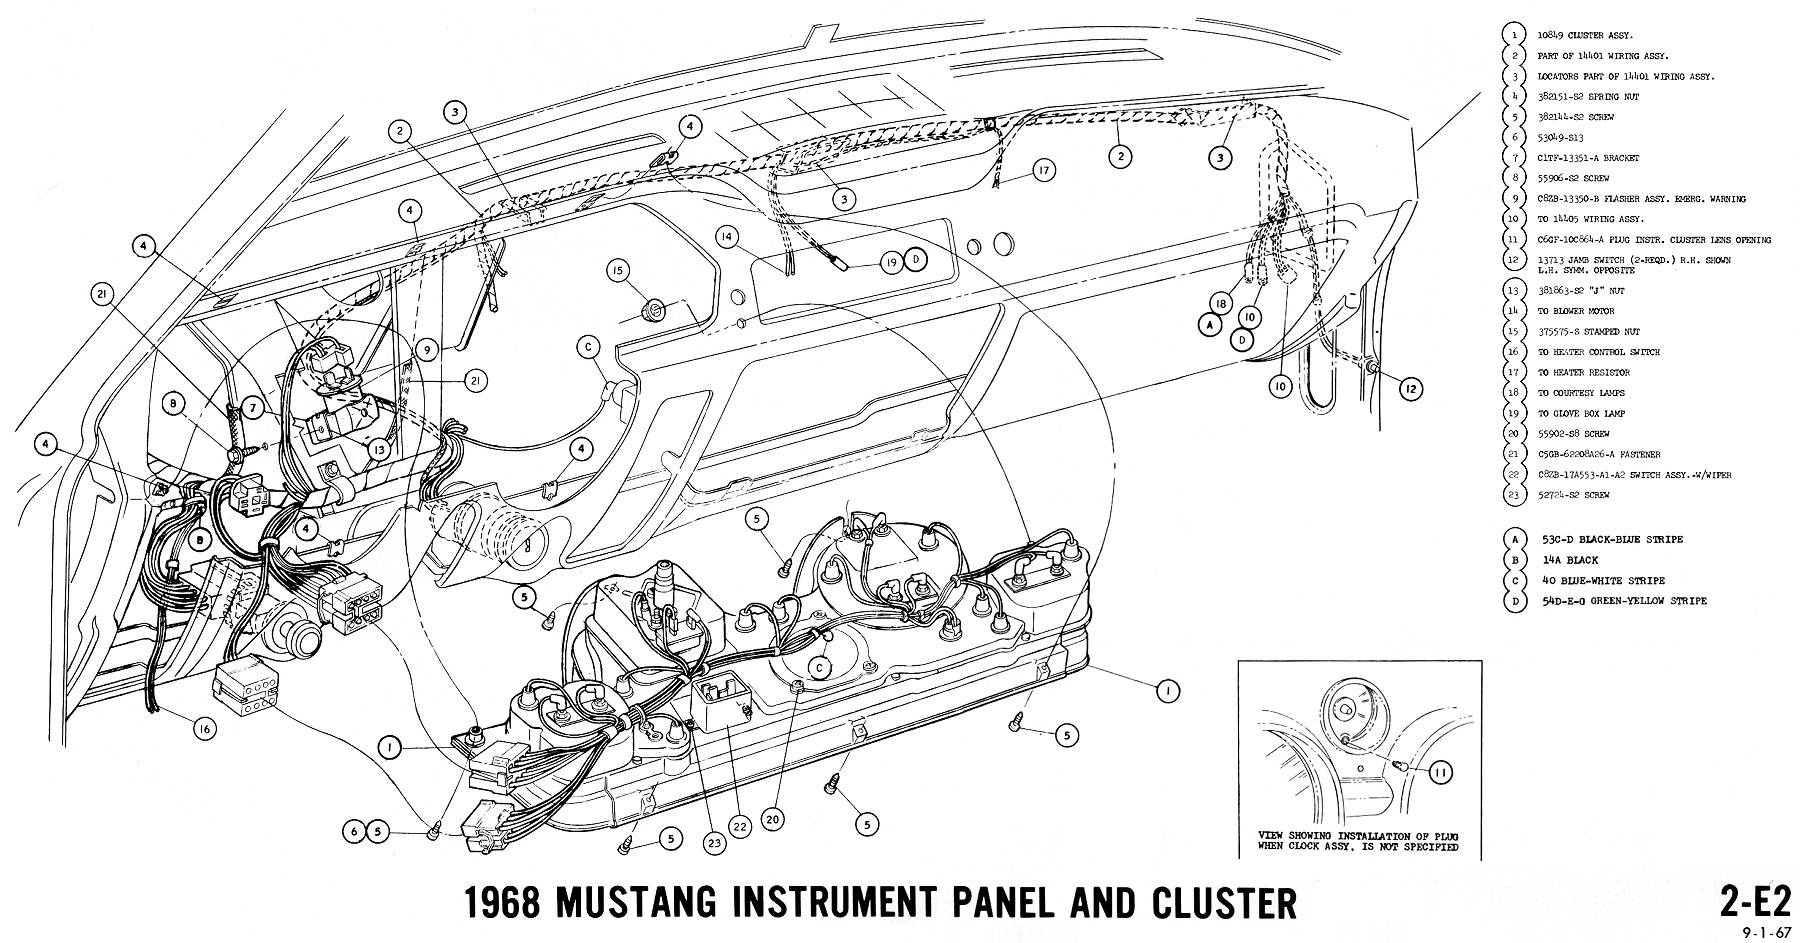 1965 Ford Mustang Wiring Diagram together with 2014 10 01 archive furthermore Heater Wiring Diagram 1968 Ford Galaxie furthermore Mustang el as well 1966 1968 Mustang Fogl  Wiring. on 1965 mustang gauge wiring diagram